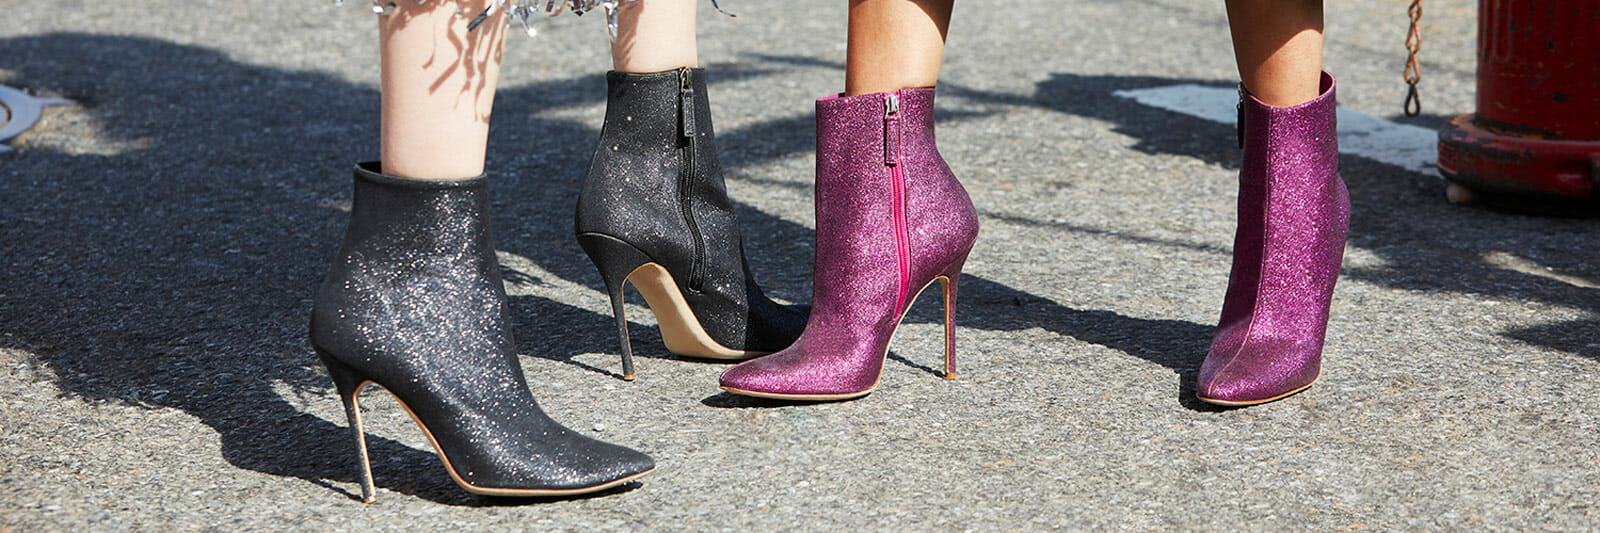 Well-Heeled: the Booties You Need this Fall